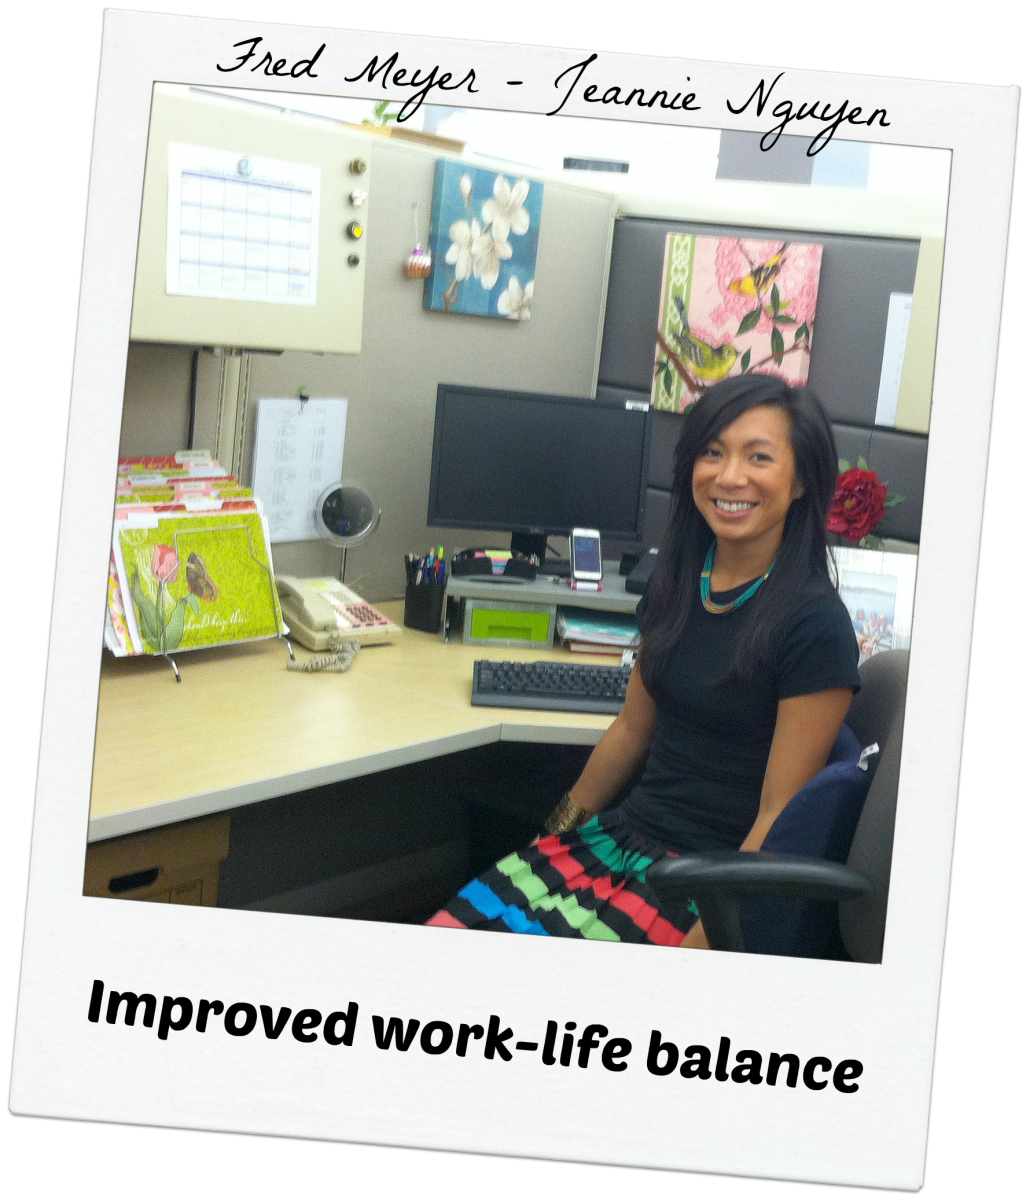 Jeannie Nguyen - Fred Meyer - Improved Work-Life Balance